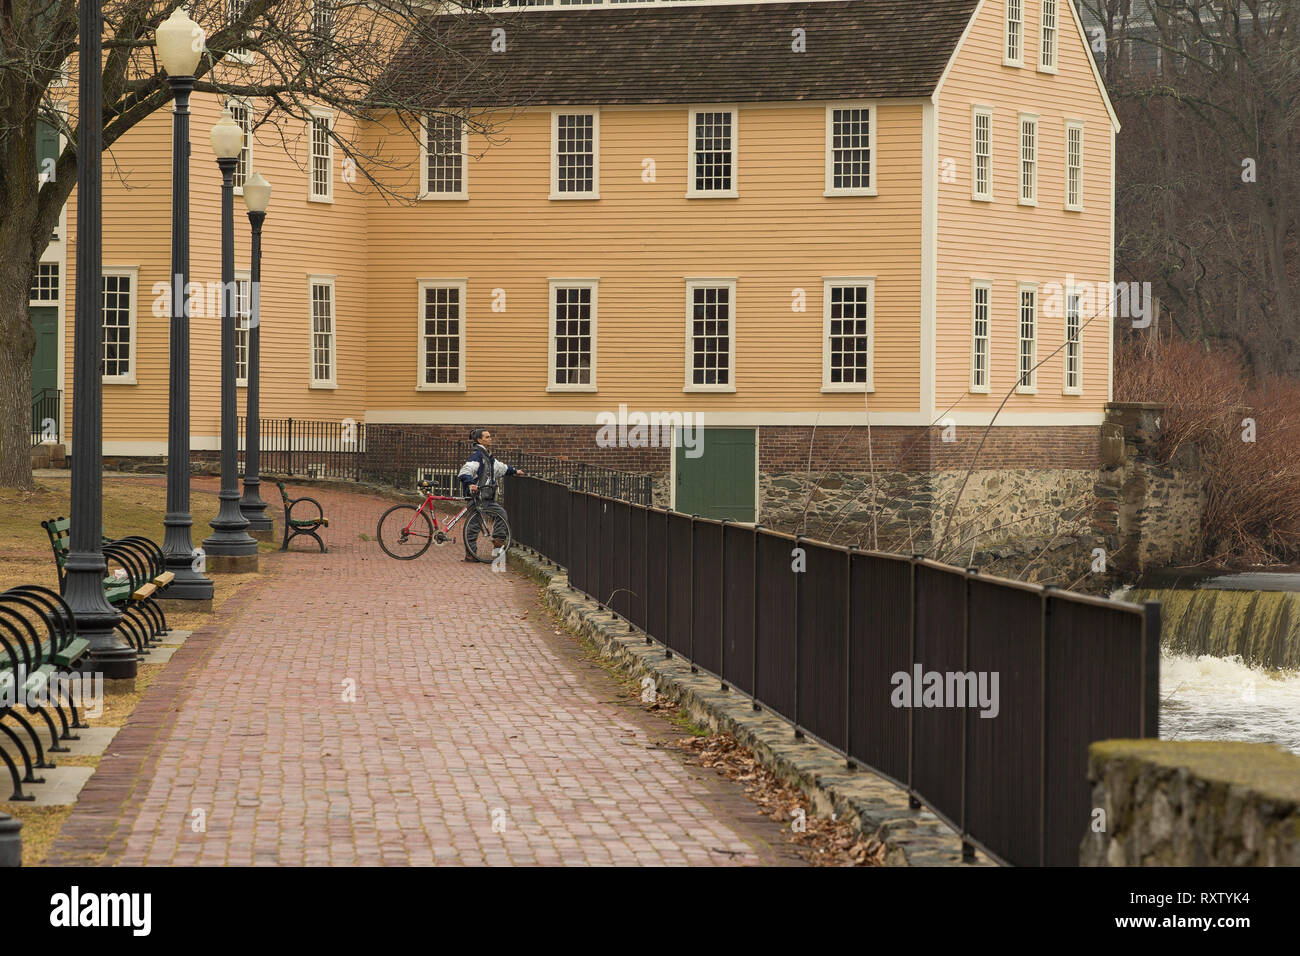 Carlos the cyclist at Slater Mill - Stock Image